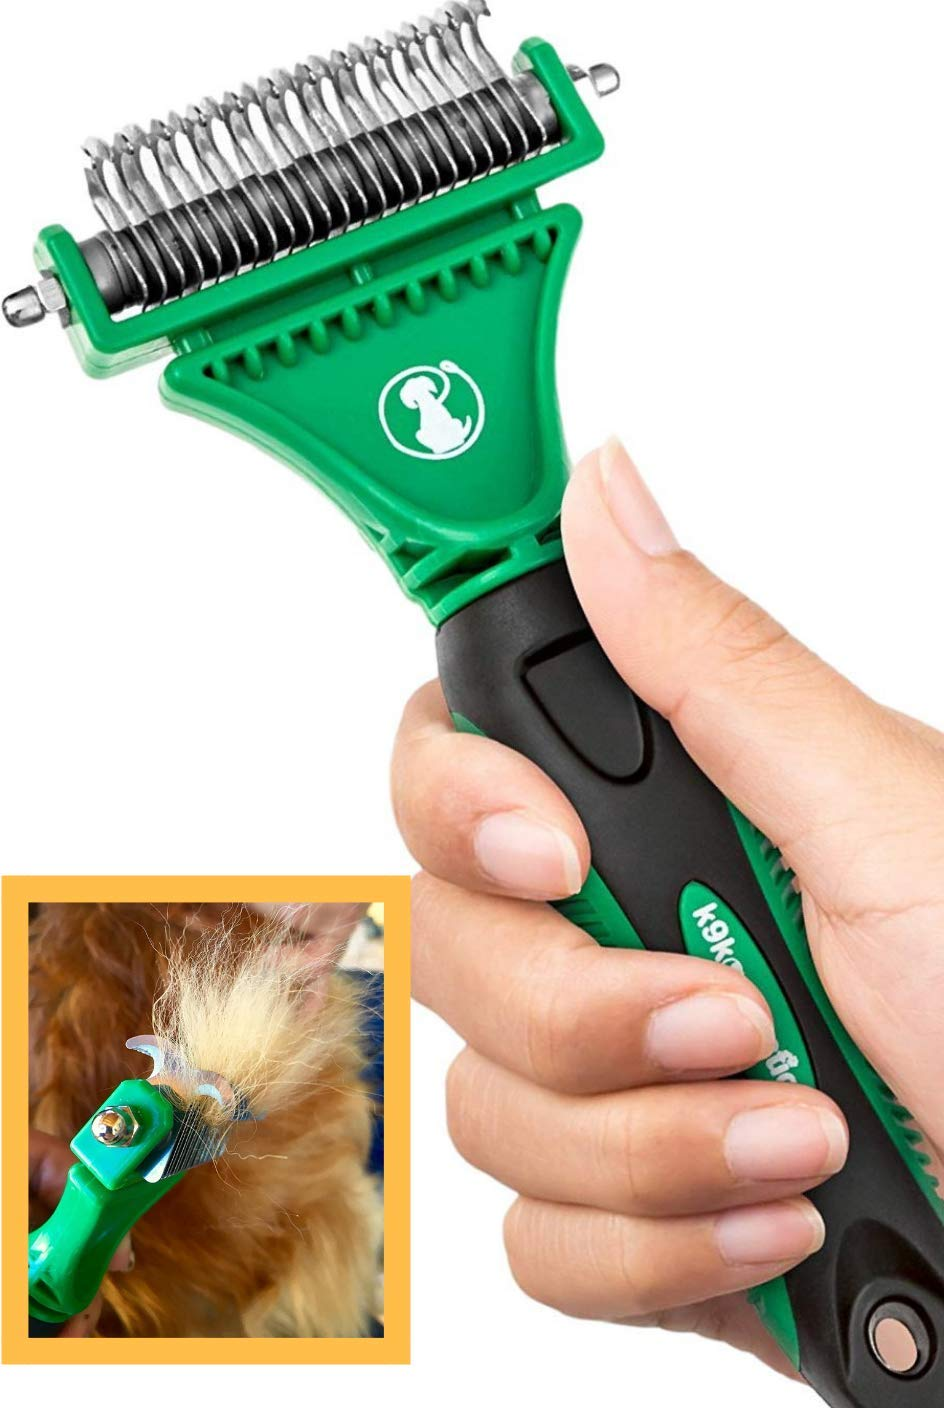 k9konnection DEMATTING Tool for Dogs and Cats | Undercoat Rake with Dual Shedding Blades | Cat Hair Remover Comb for Knots, Tangles & Mats | Dog Brush for Long Haired | Pet Grooming Kit by k9konnection